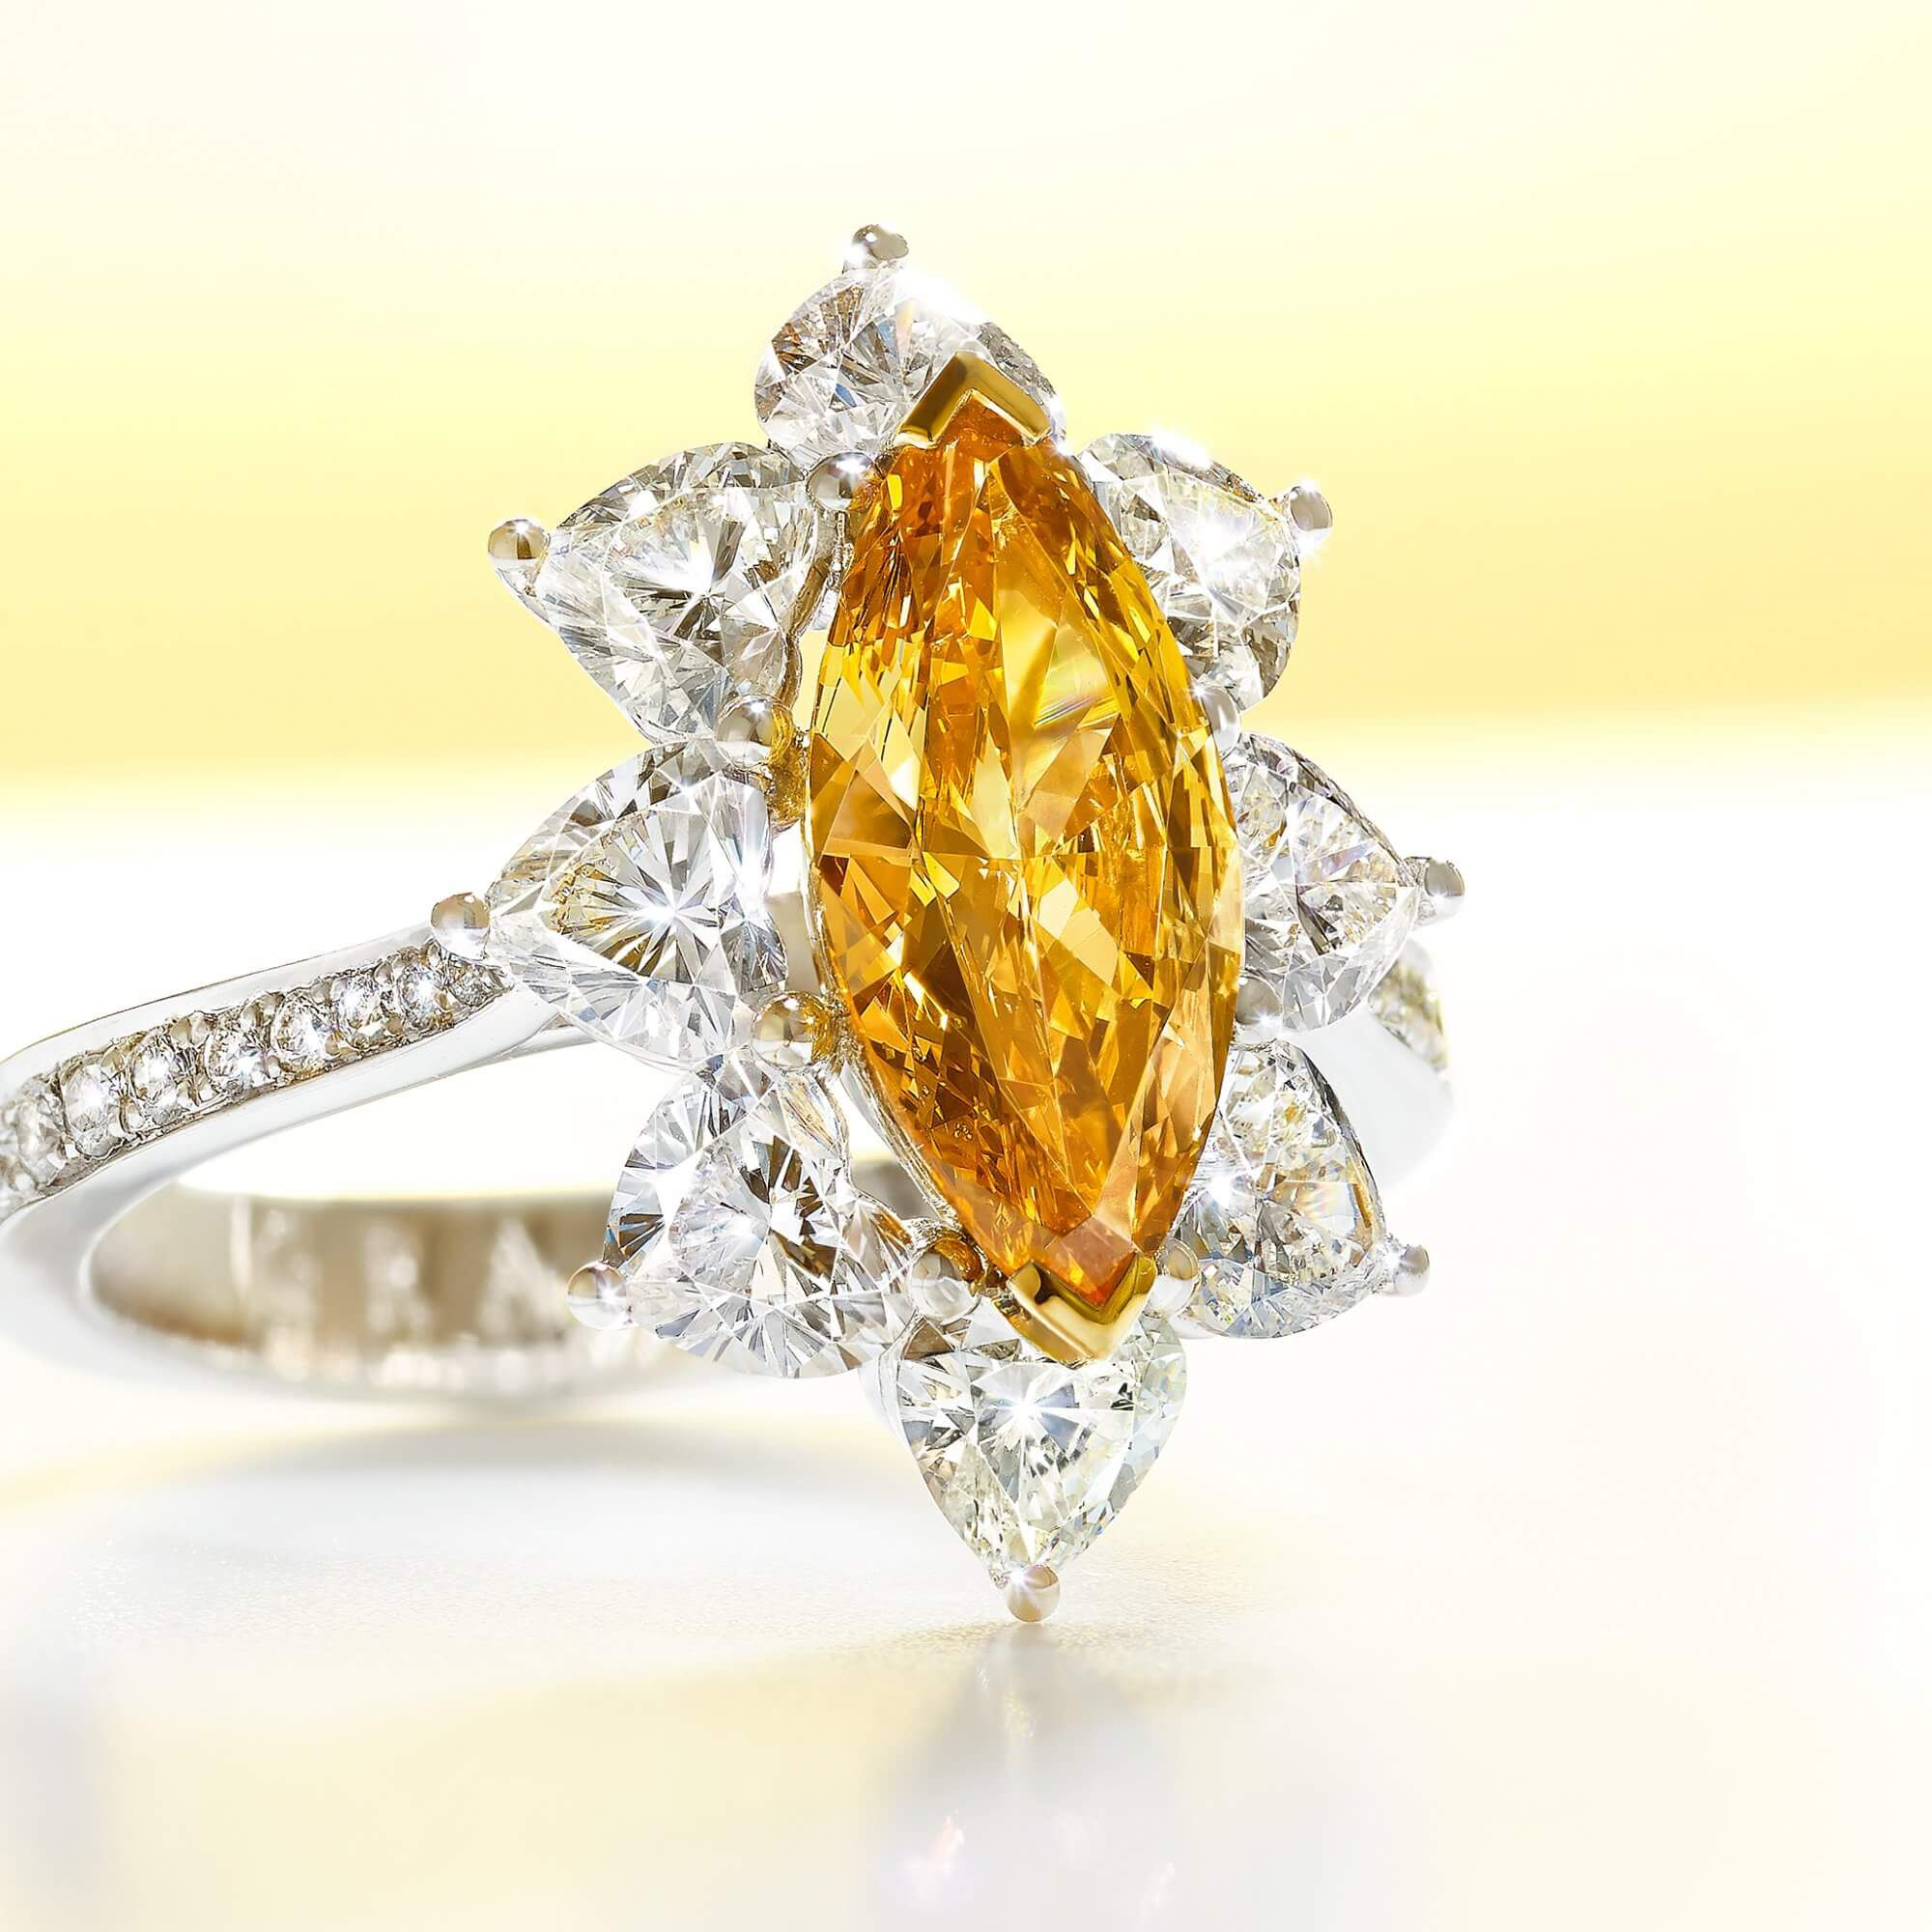 A 1 carat Fancy Vivid Yellow Orange marquise diamond Graff ring